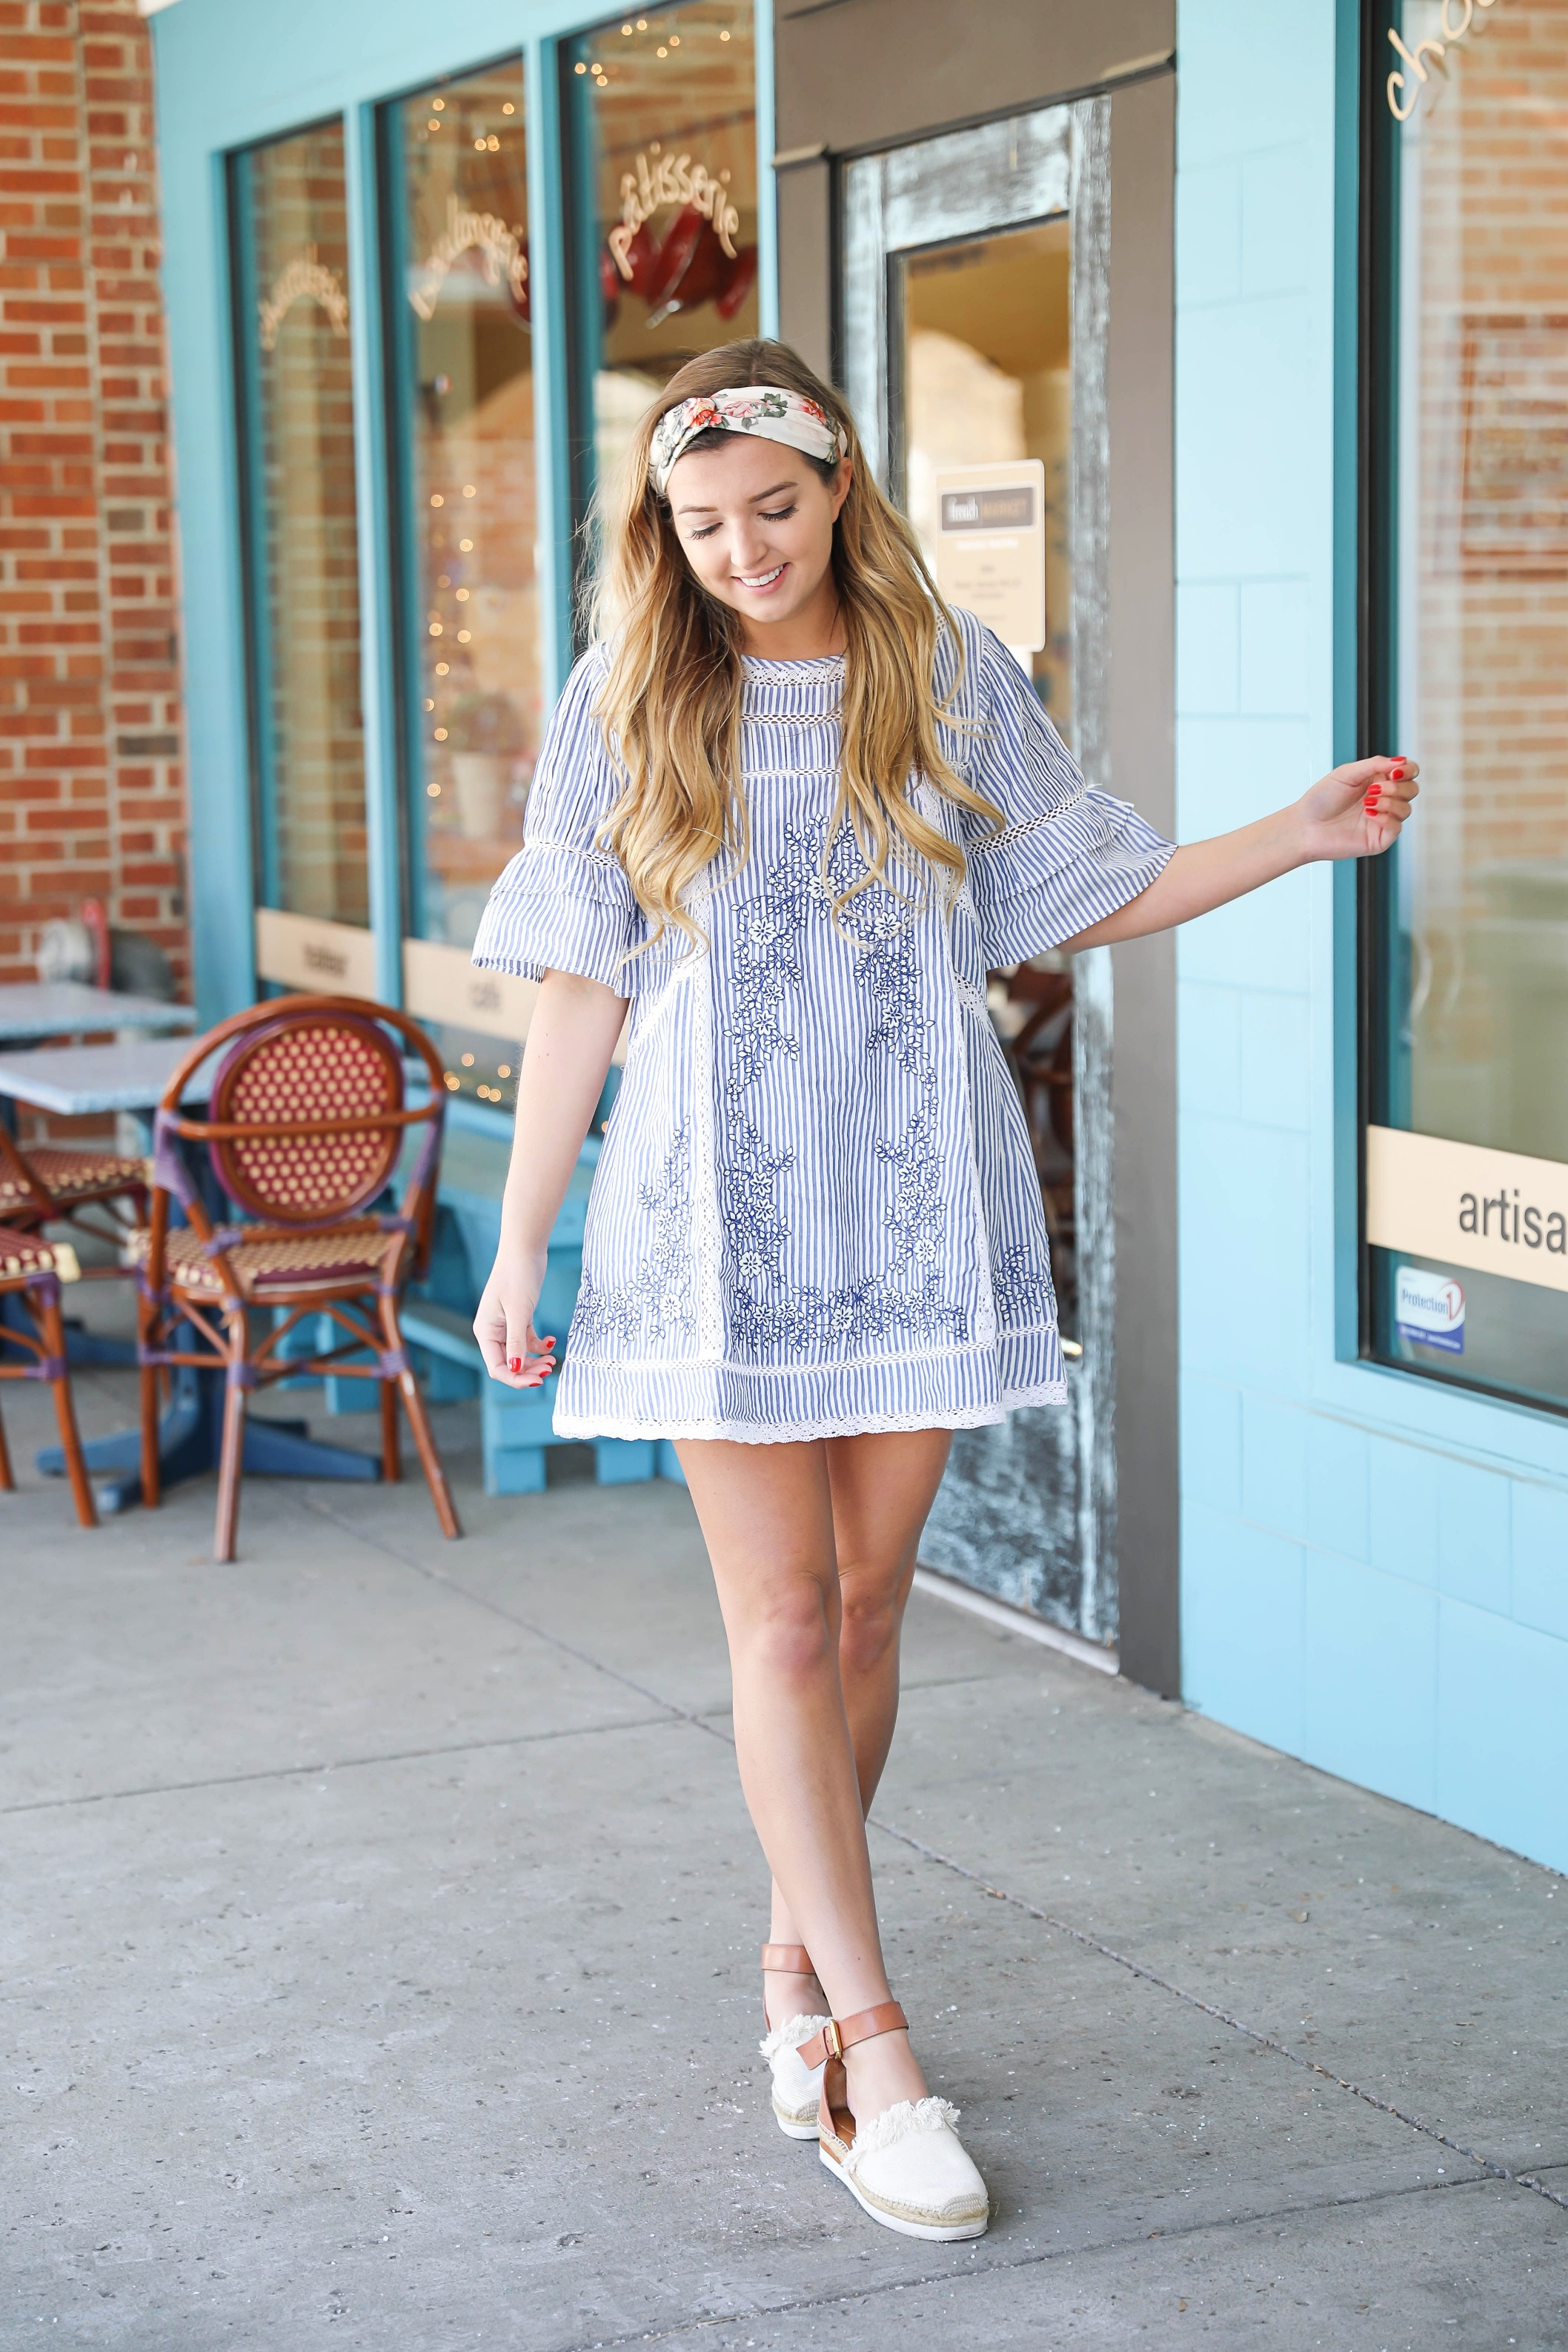 The perfect spring day outfit! I am loving casual dresses right now, and this one by Free People is so cute! The Seersucker flowy embrodiered dress goes perfectly with a floral knot headband and espadrille sandals! Get the details on fashion blog daily dose of charm by lauren lindmark